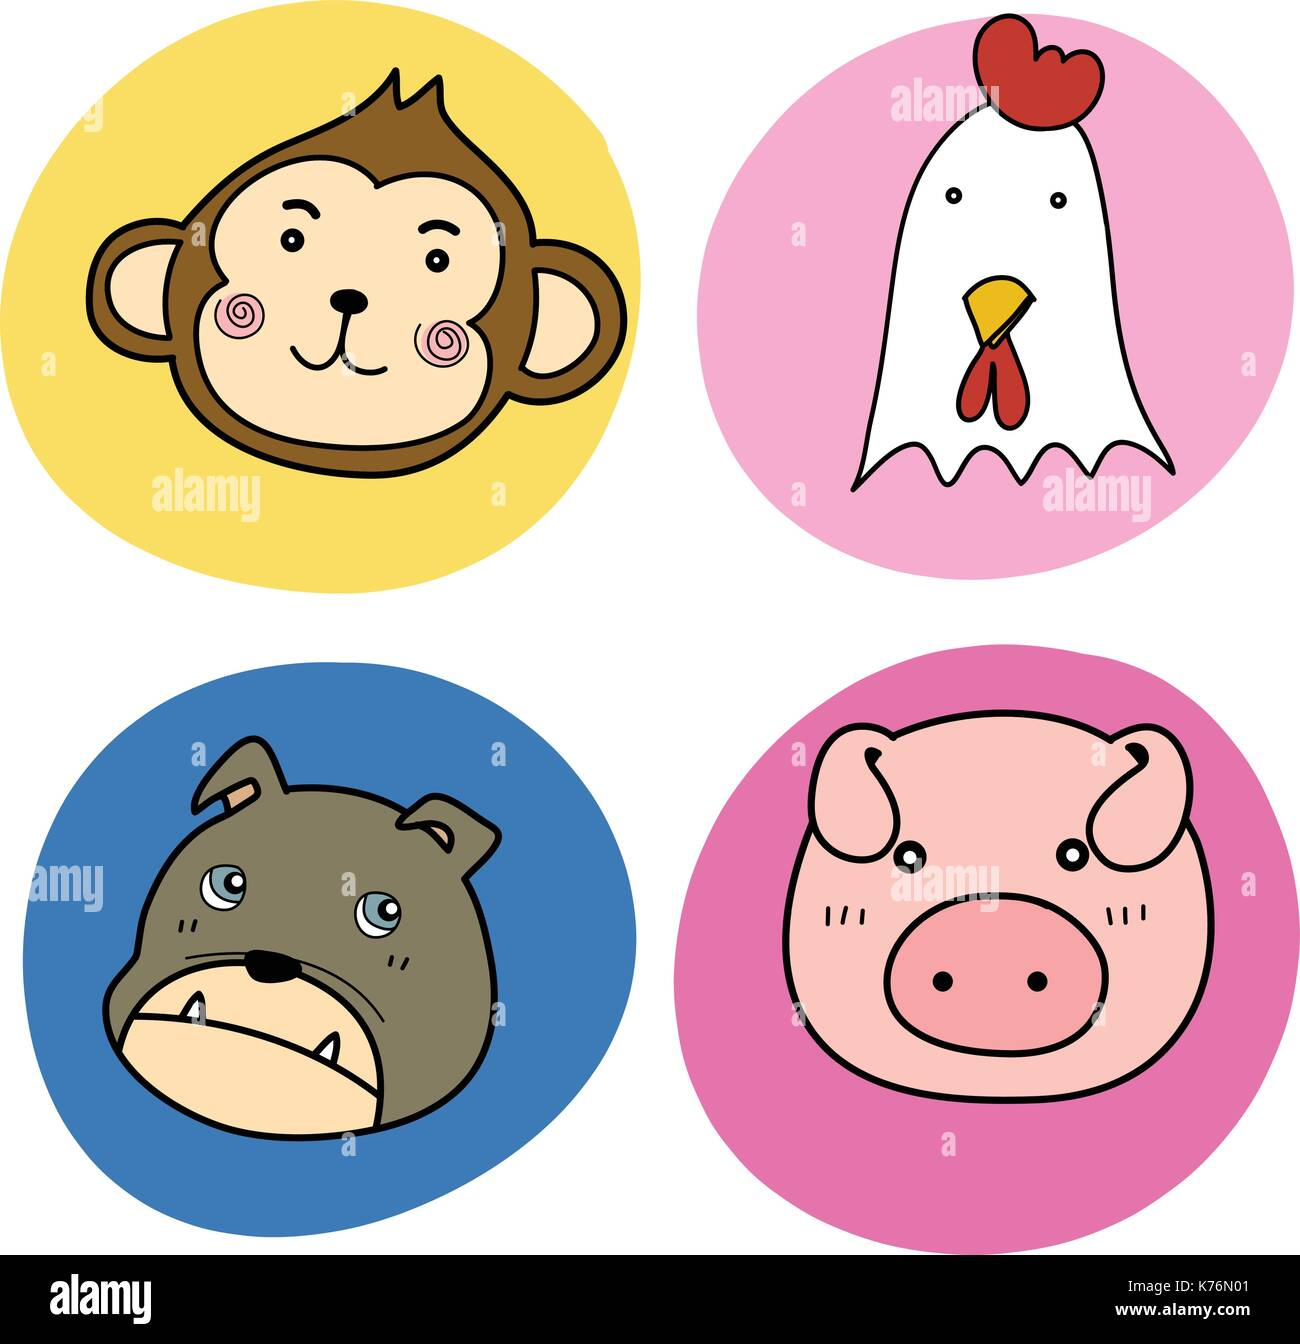 Baby Donkey Cut Out Stock Images & Pictures - Alamy